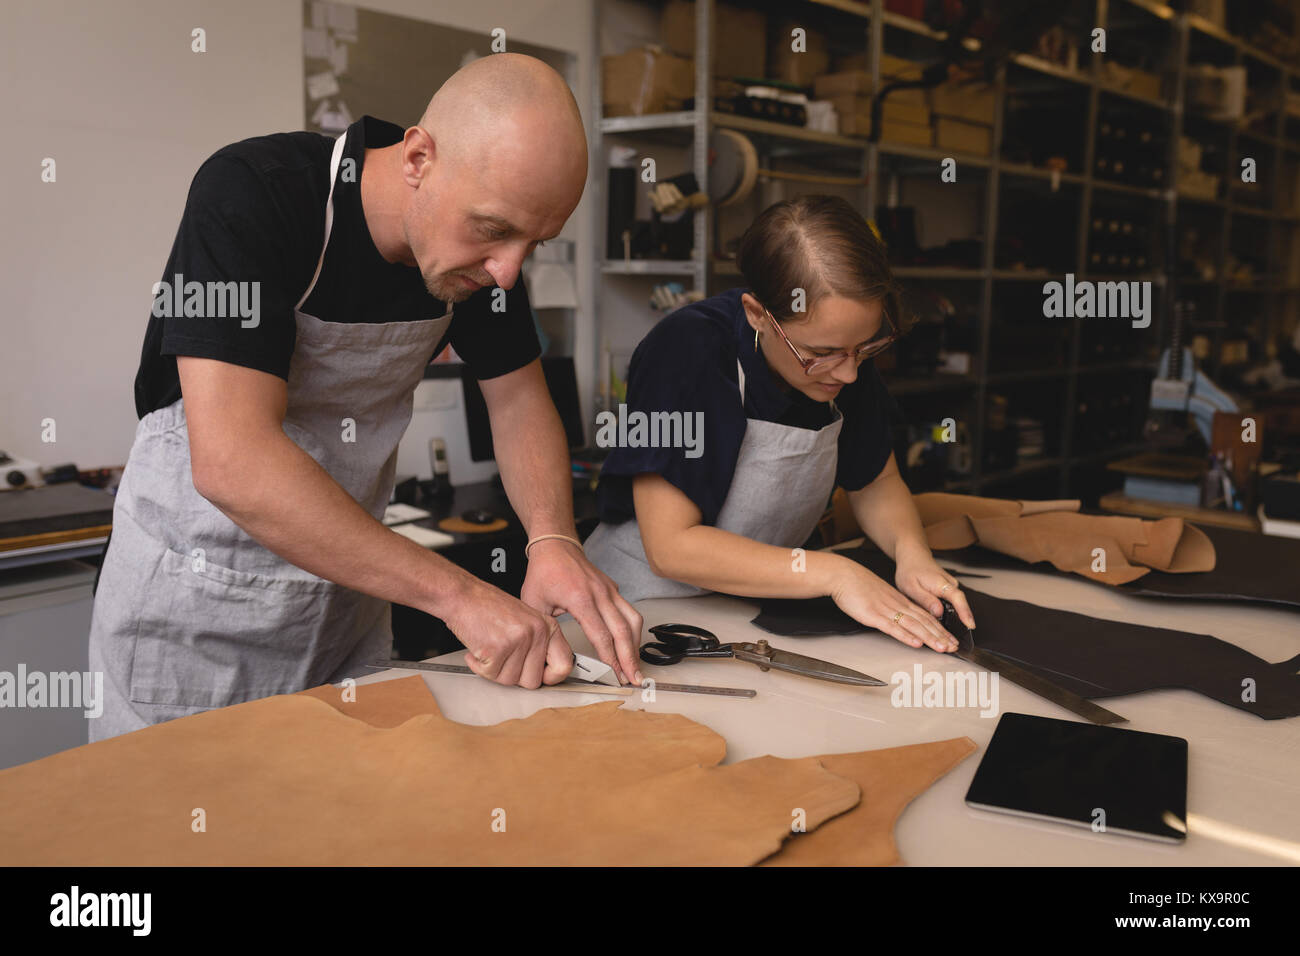 Workers measuring leather with ruler - Stock Image